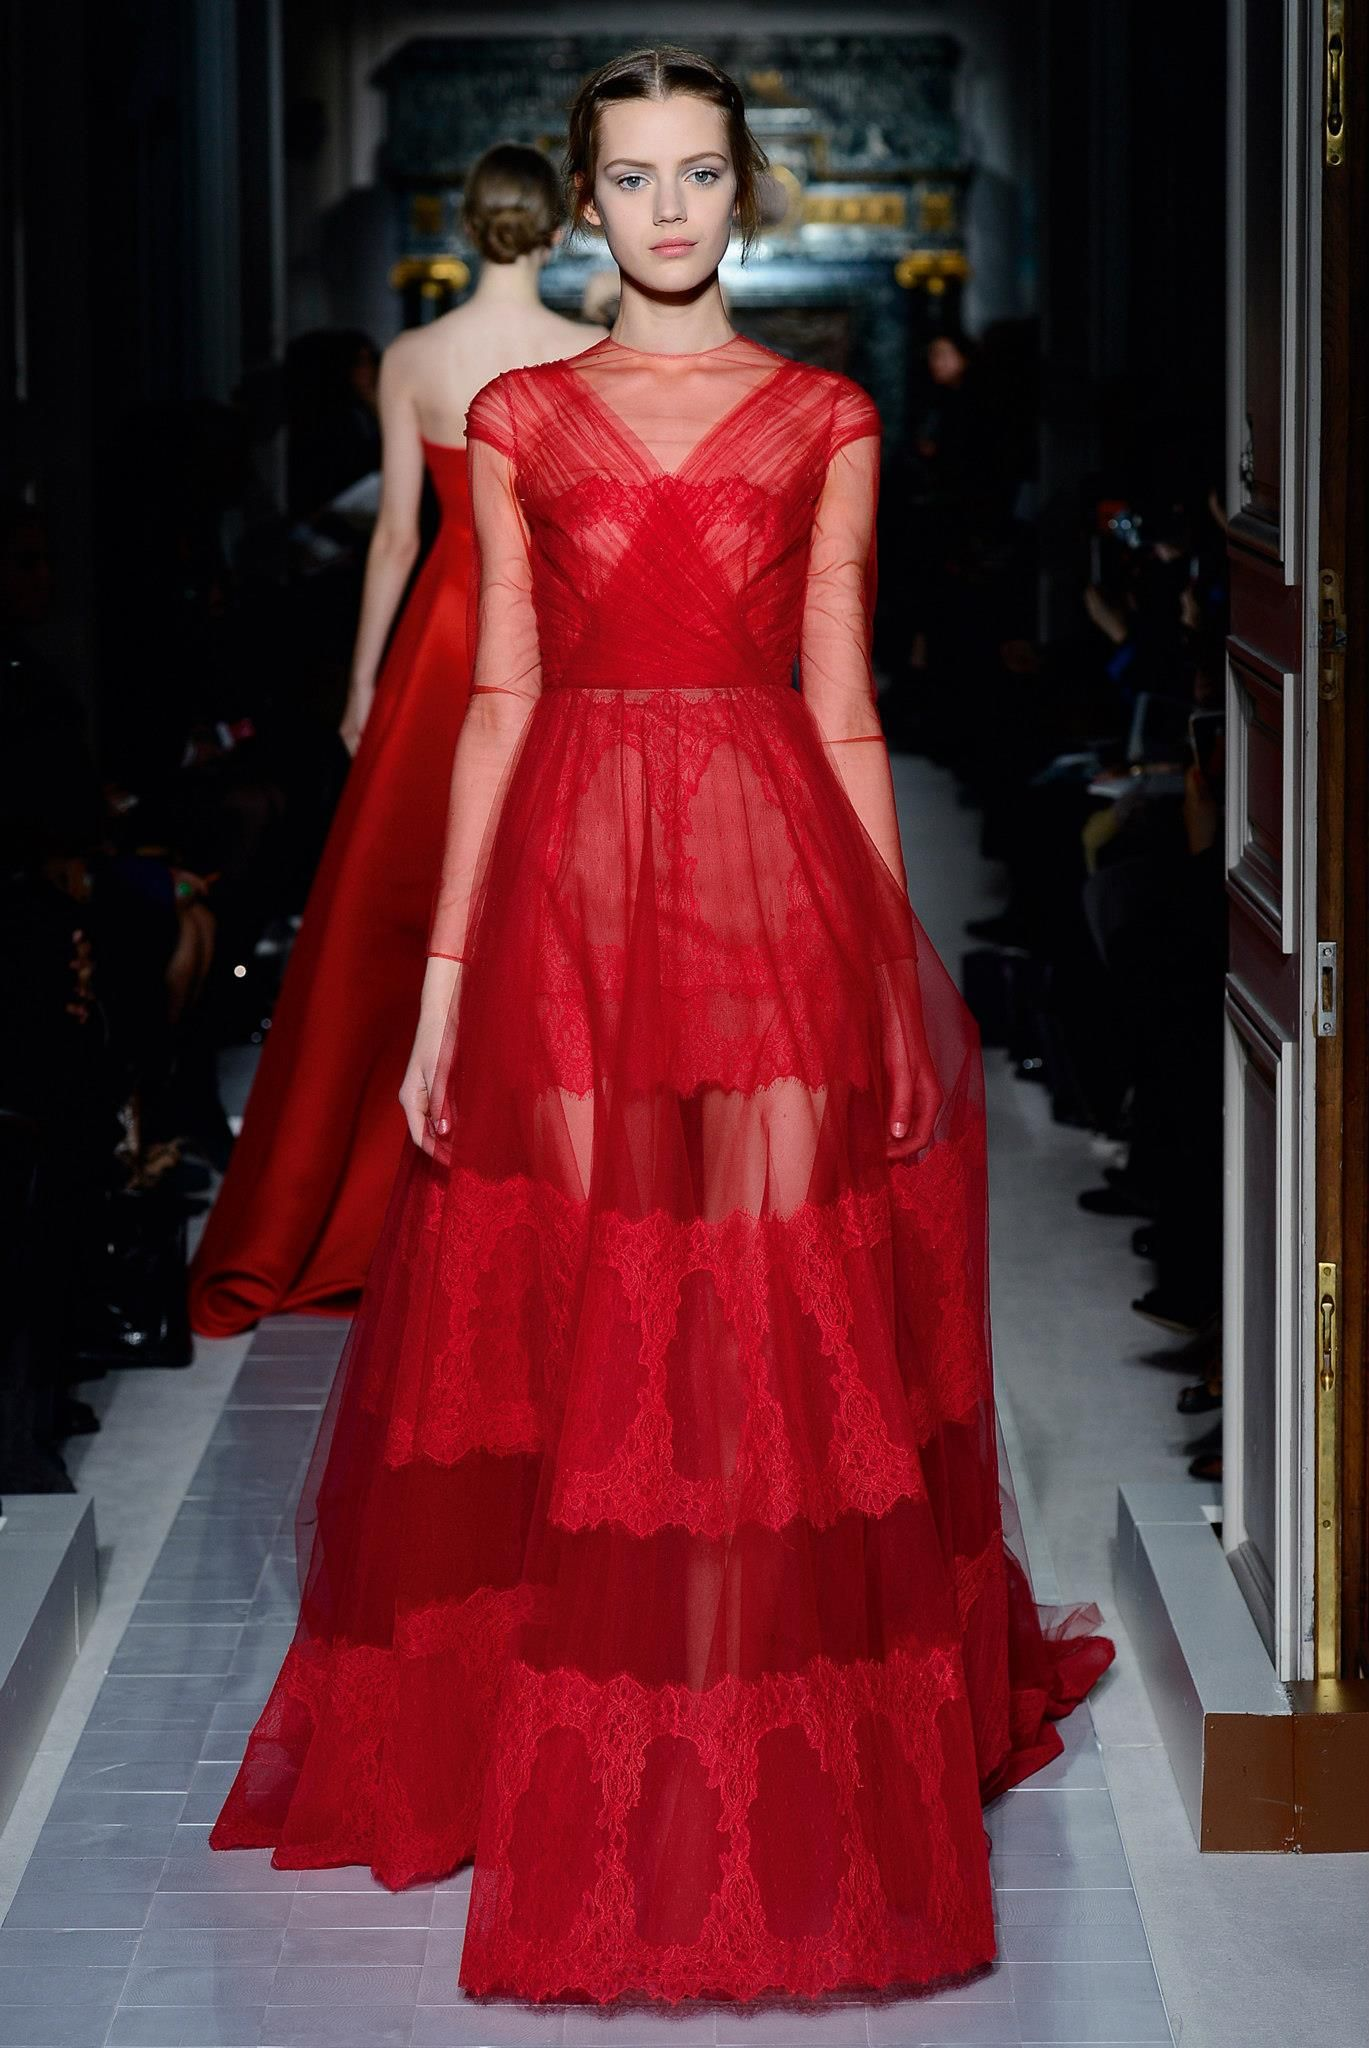 Dsign Valentino Valentino Red Dress Collection A Graceful Impact